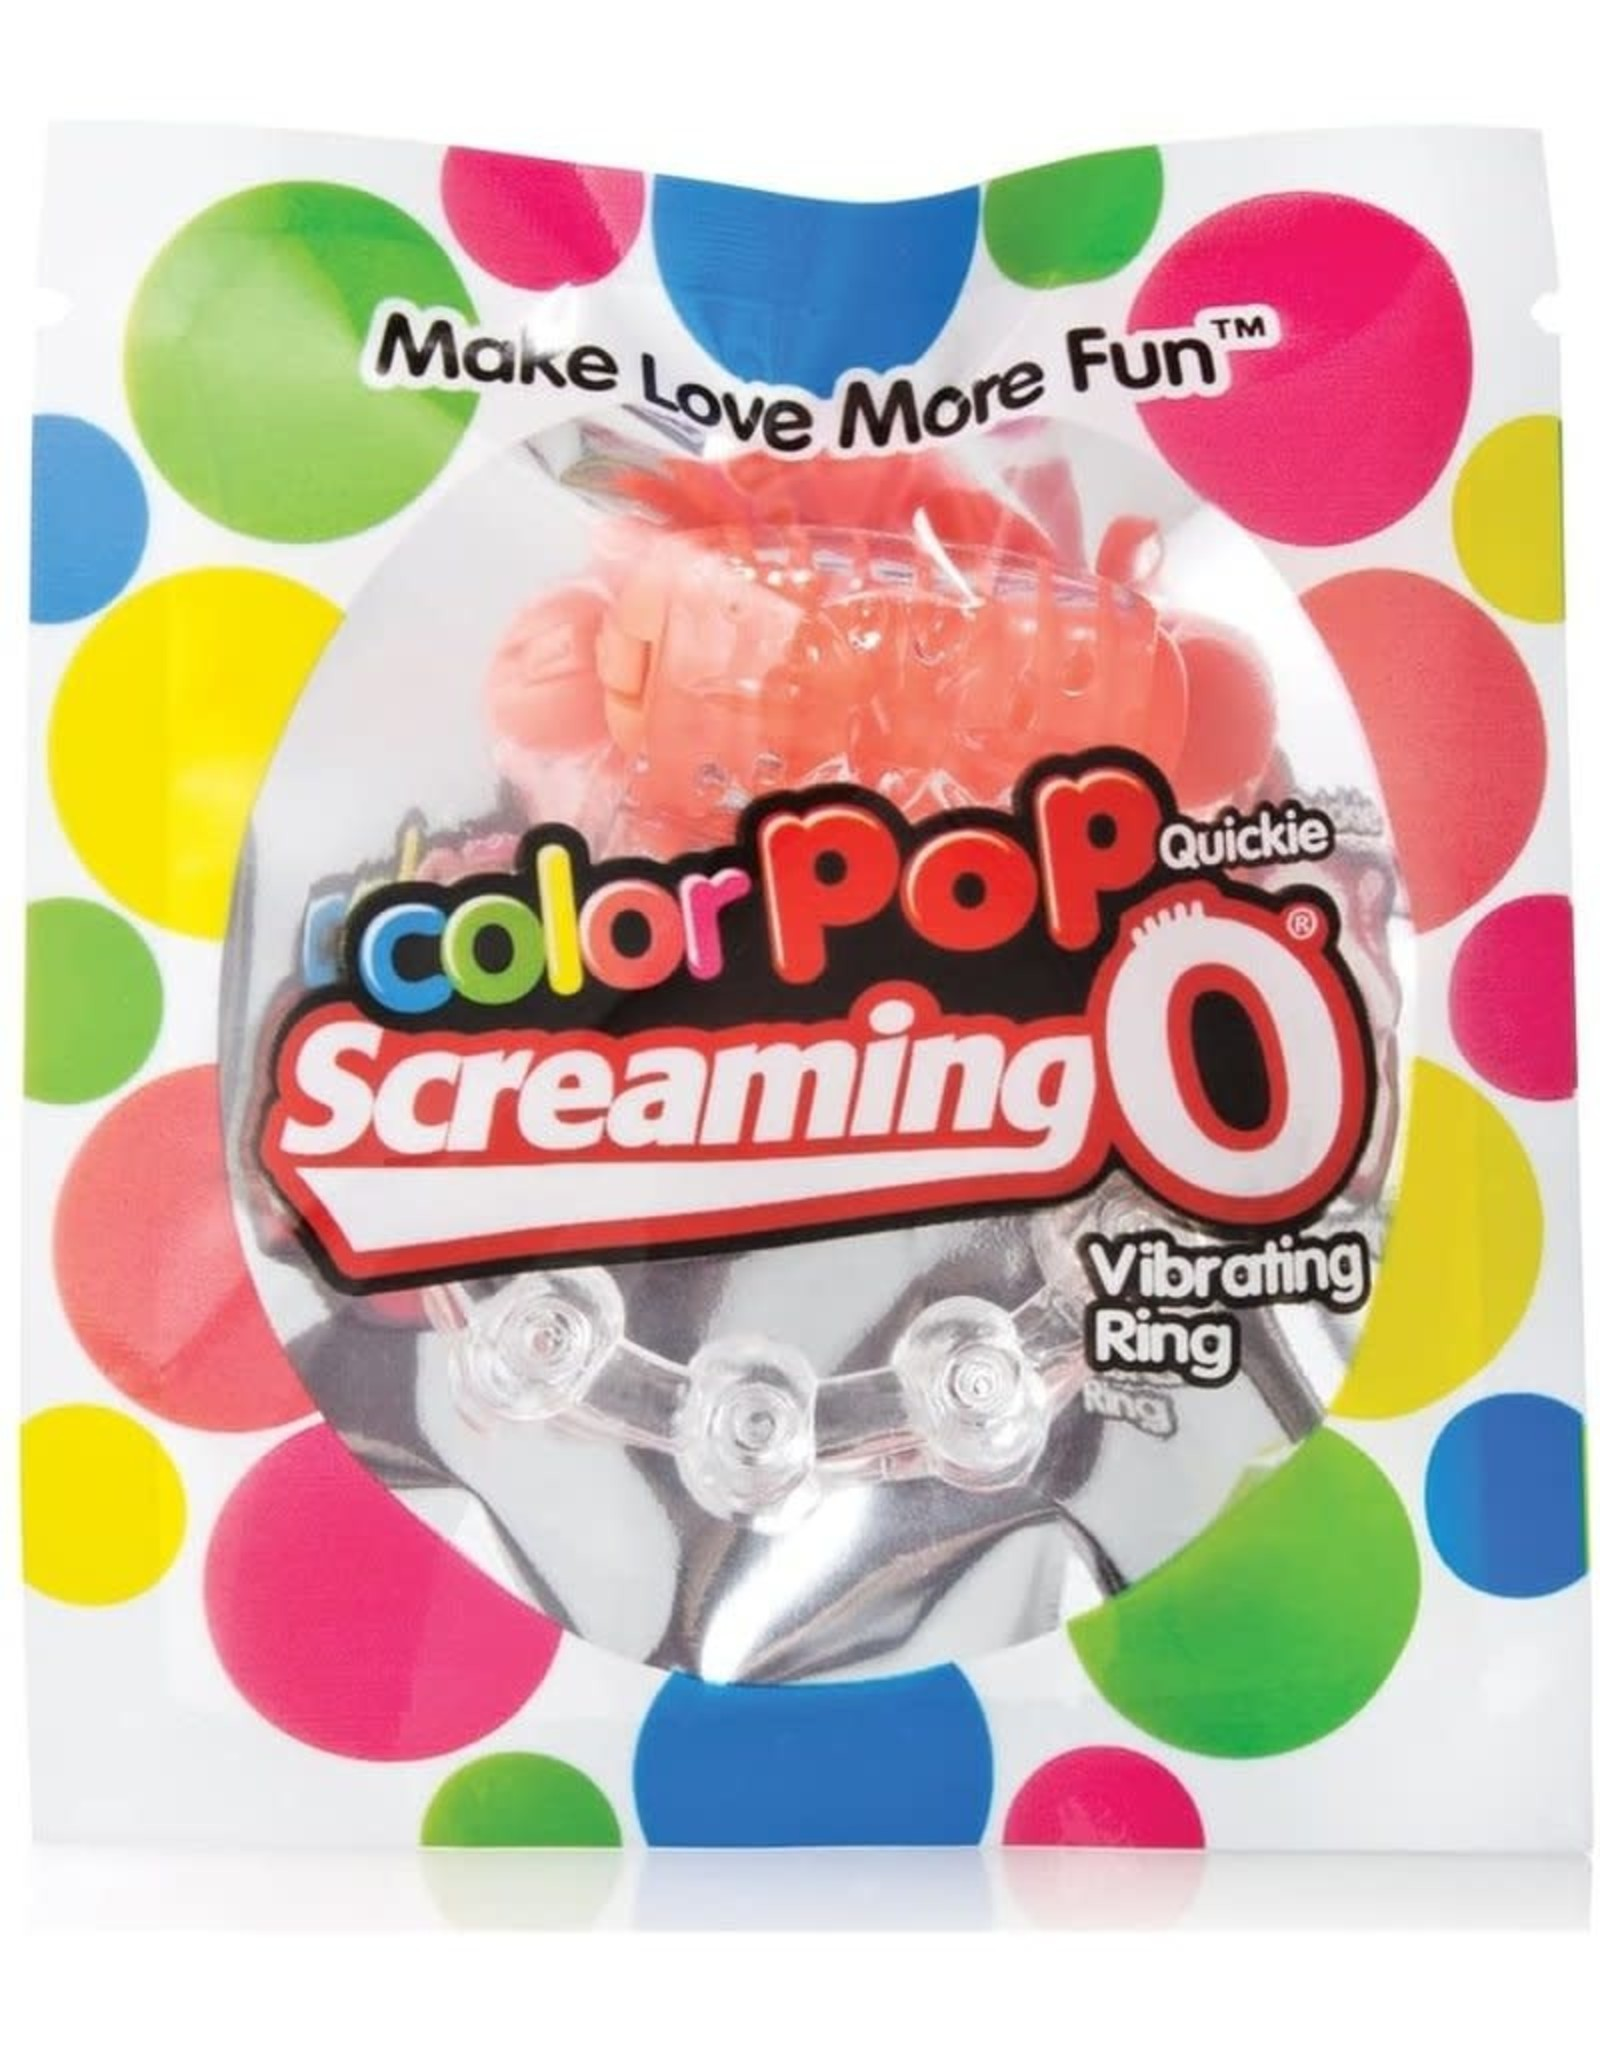 SCREAMING O - COLOR POP QUICKIE VIBE RING - ORANGE